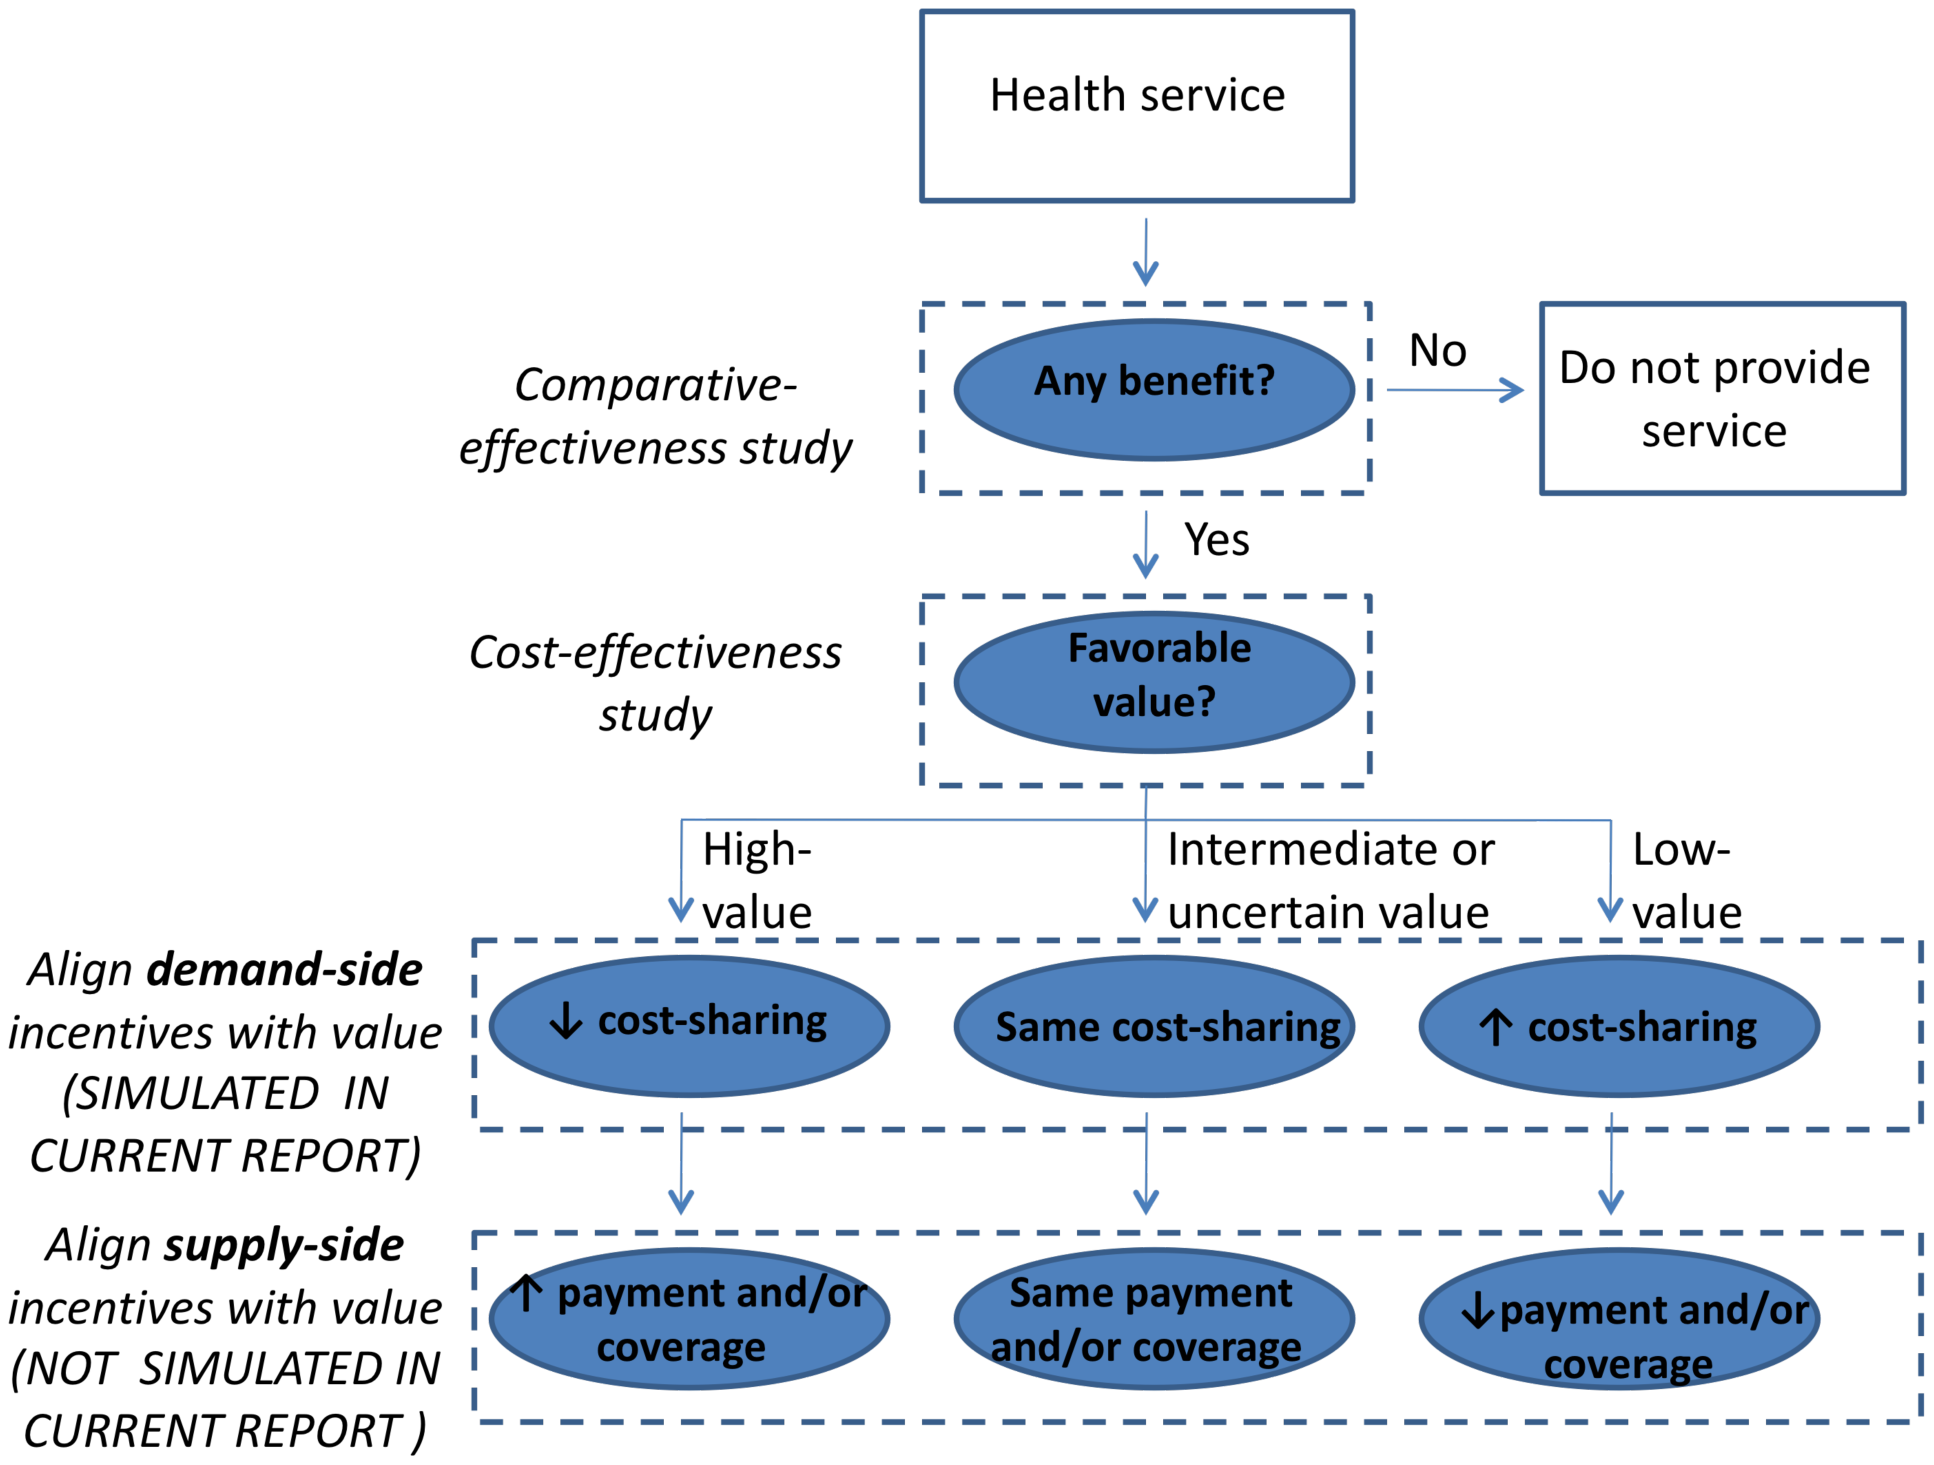 General framework for aligning health care incentives with value.